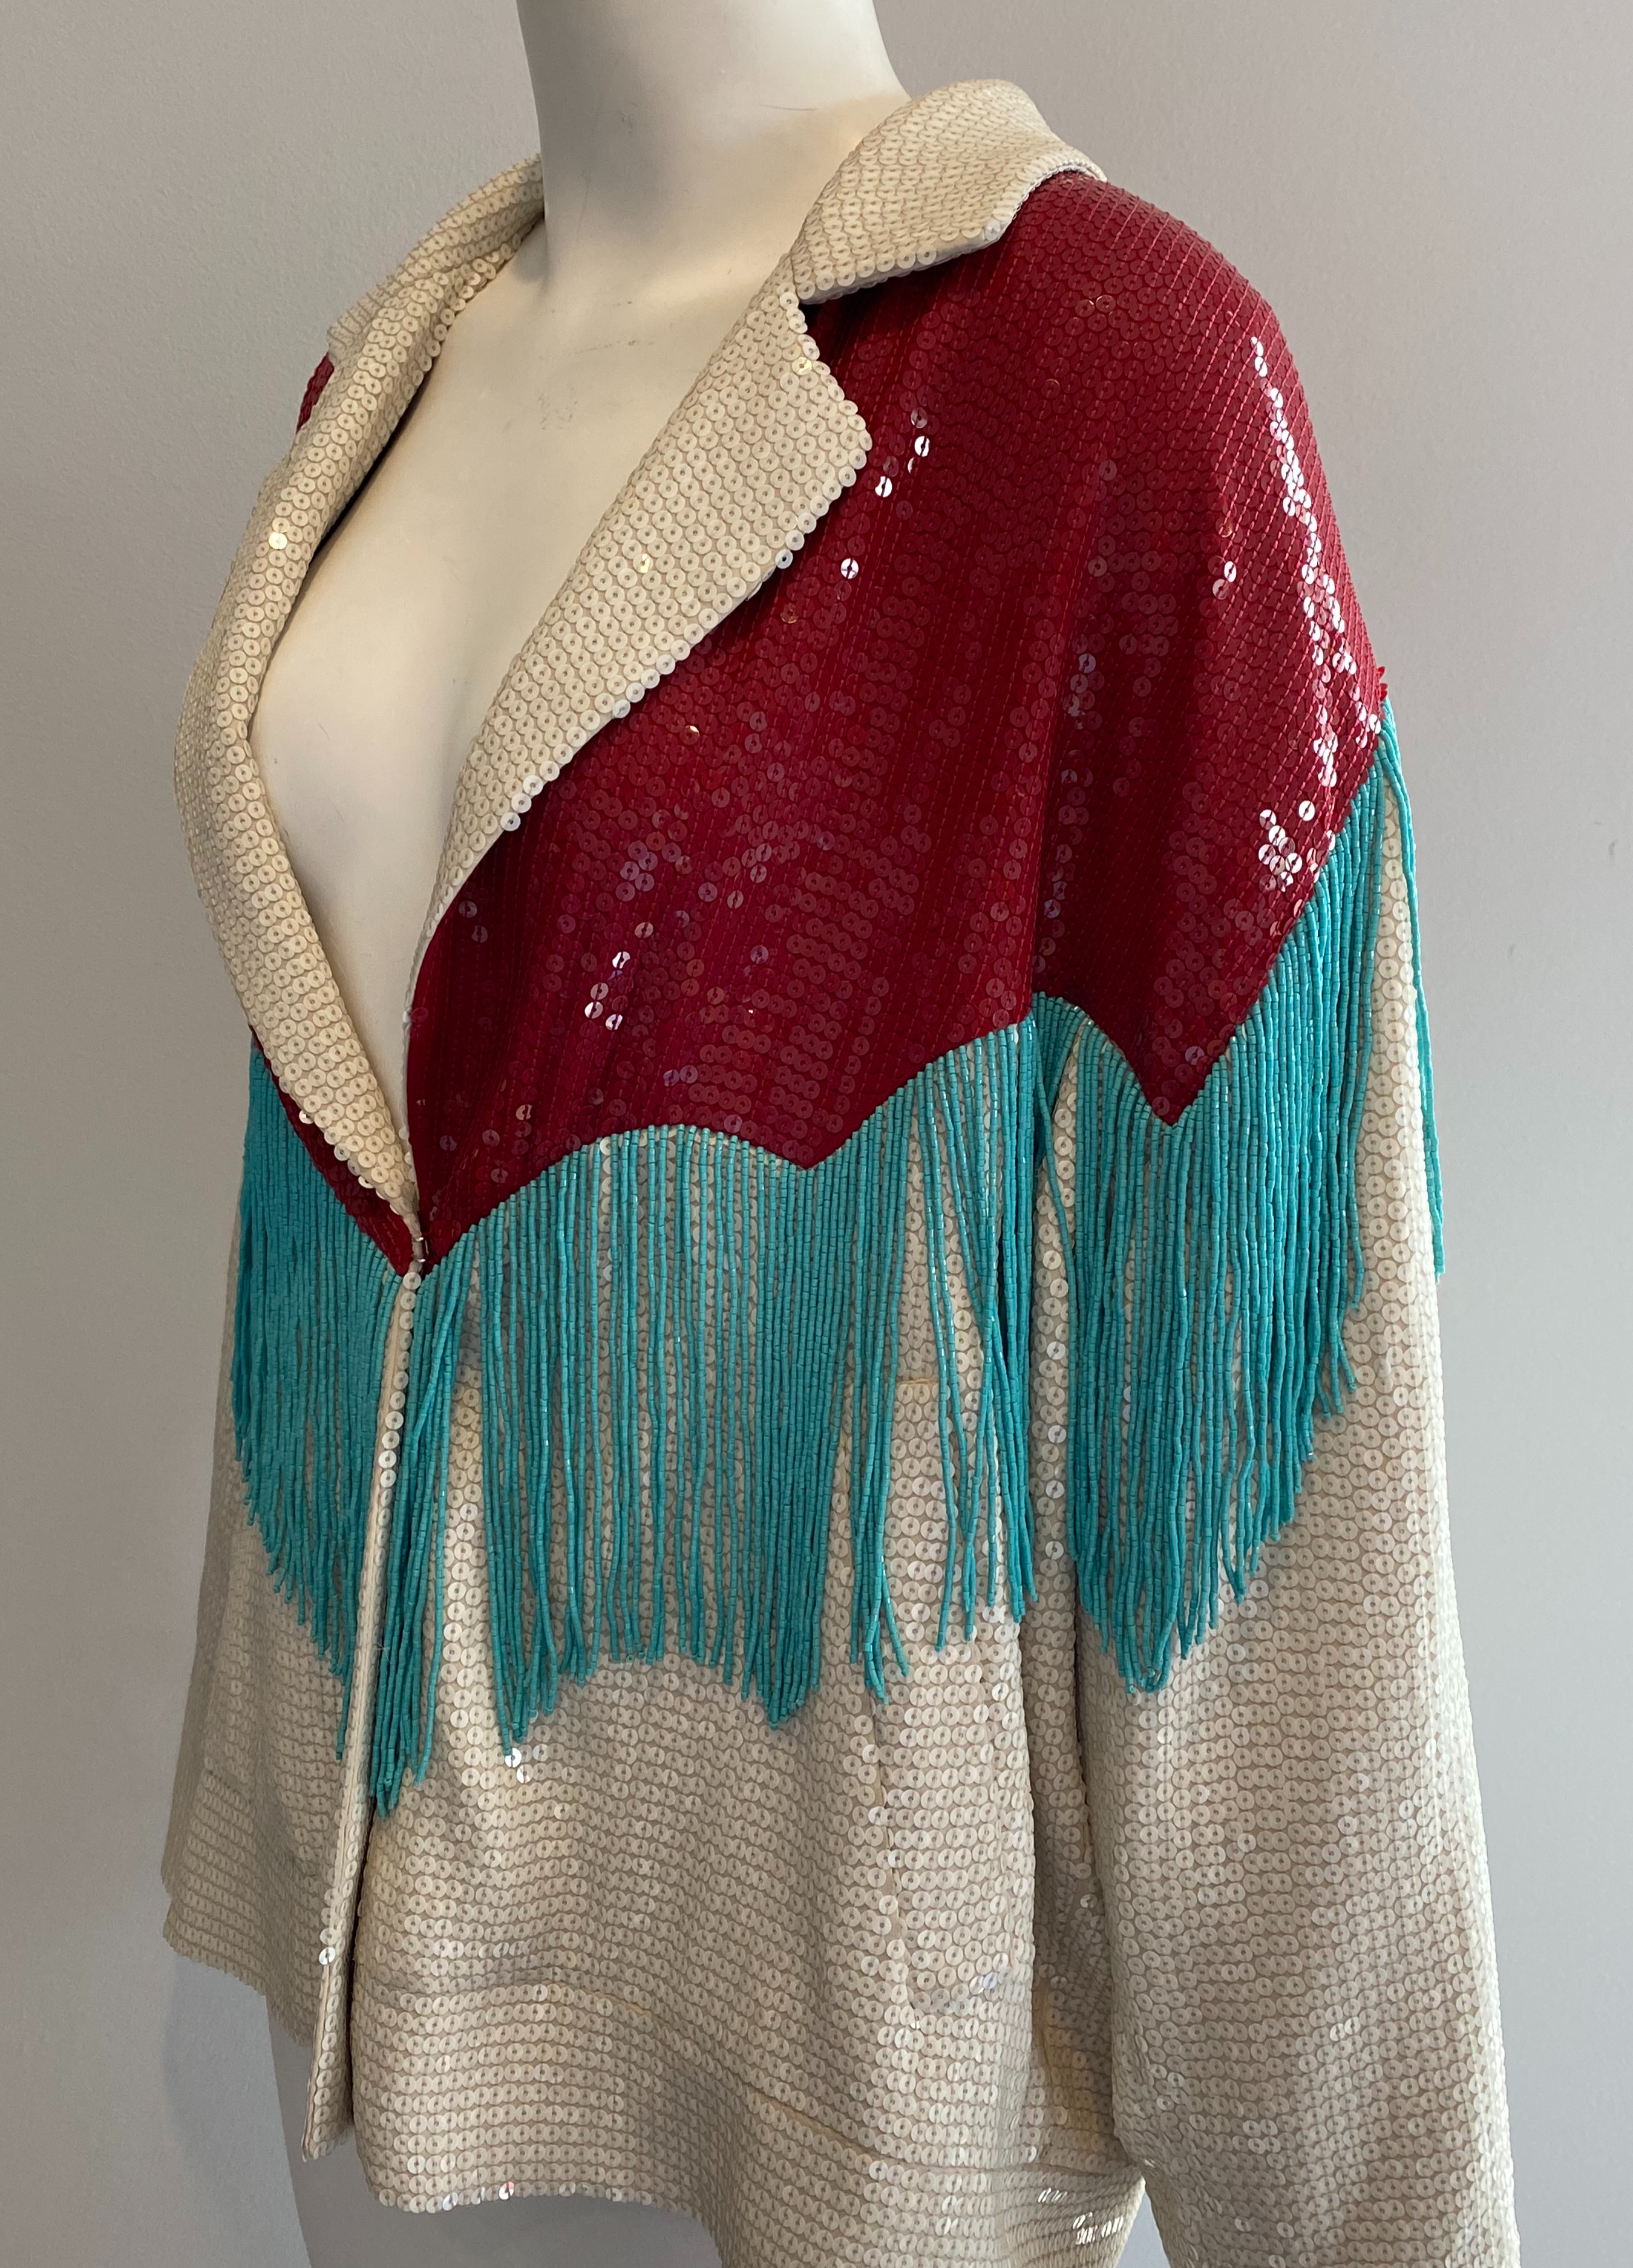 Gucci Sequin and Fringe Jacket Size 44